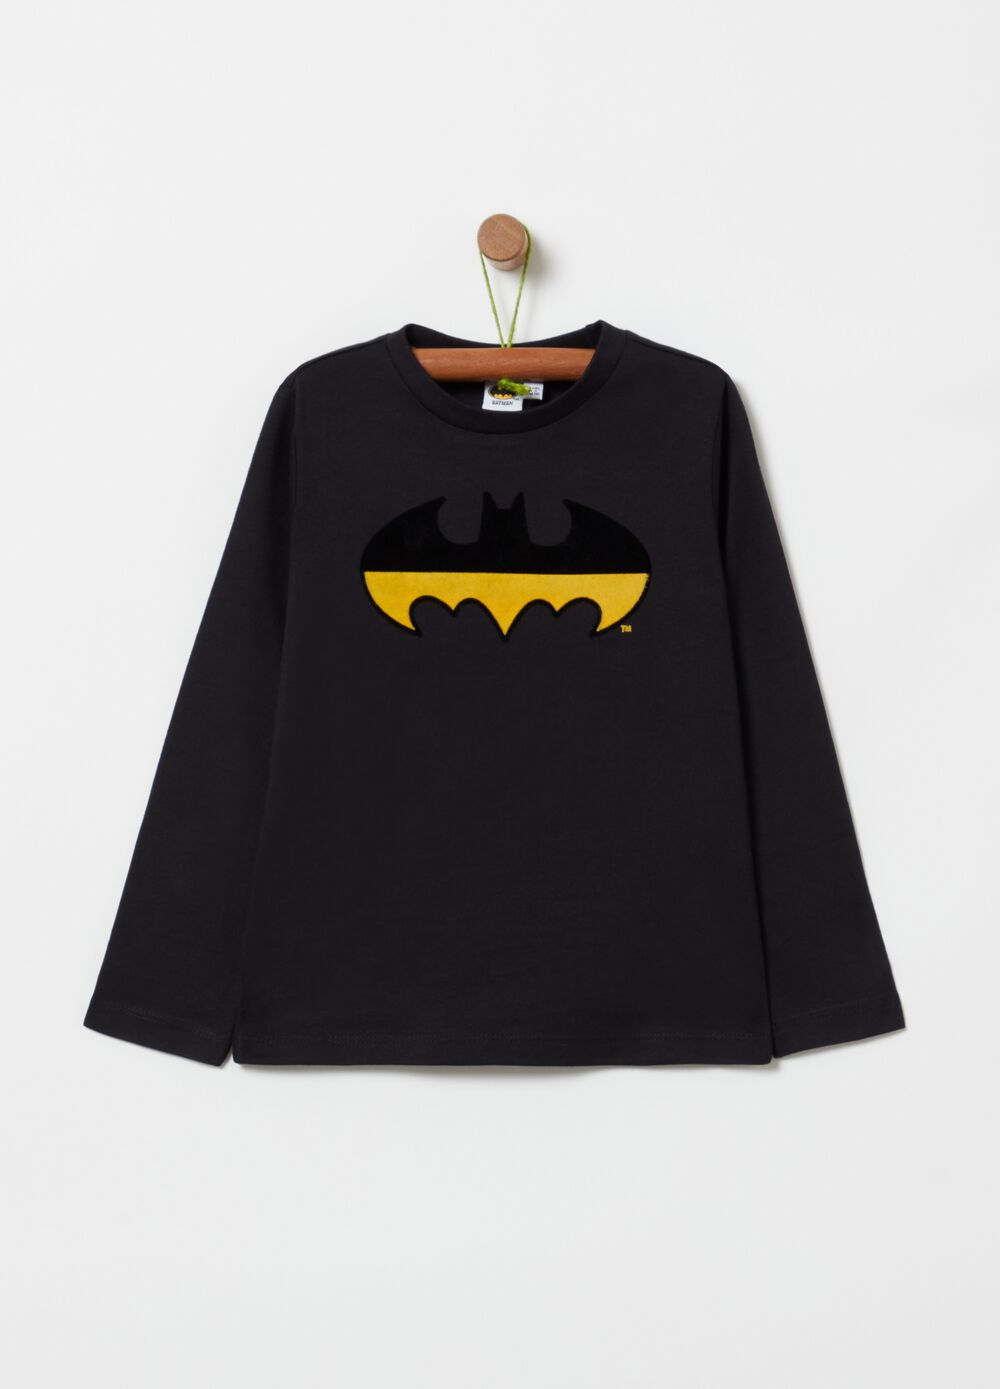 100% cotton T-shirt with Batman print